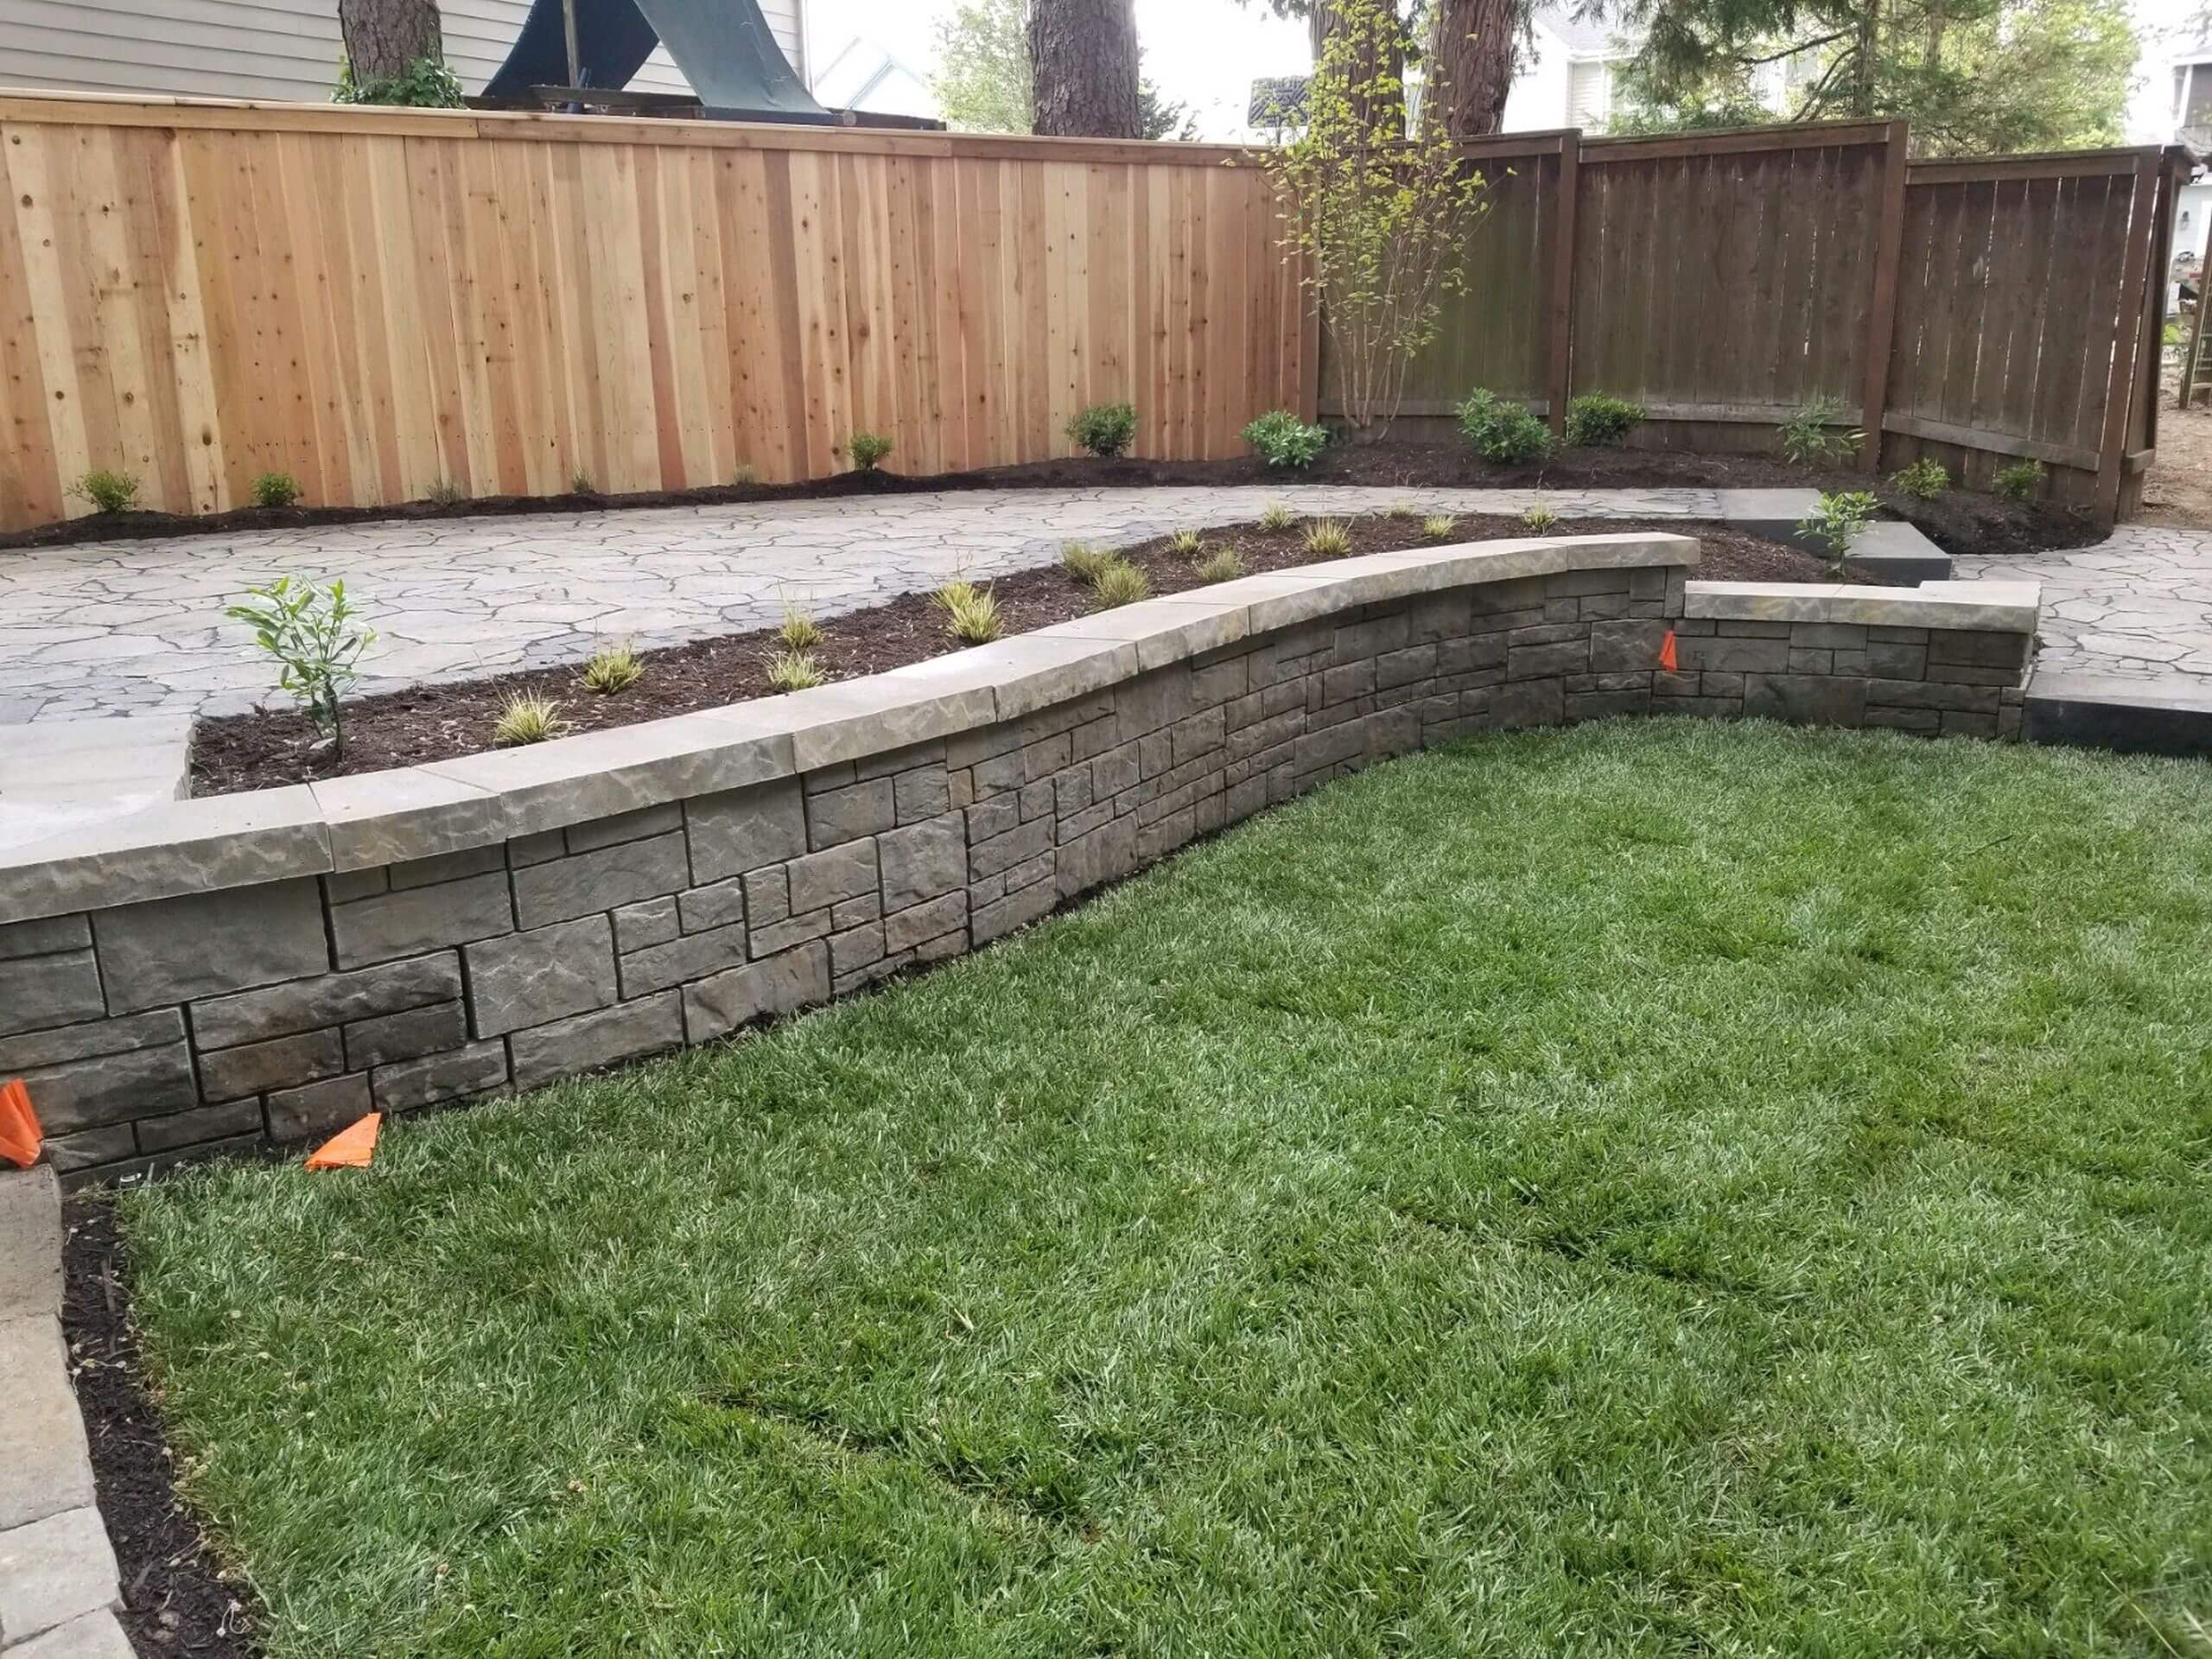 https://shovelandthumb.sfo3.digitaloceanspaces.com/garden walls/garden wall 2